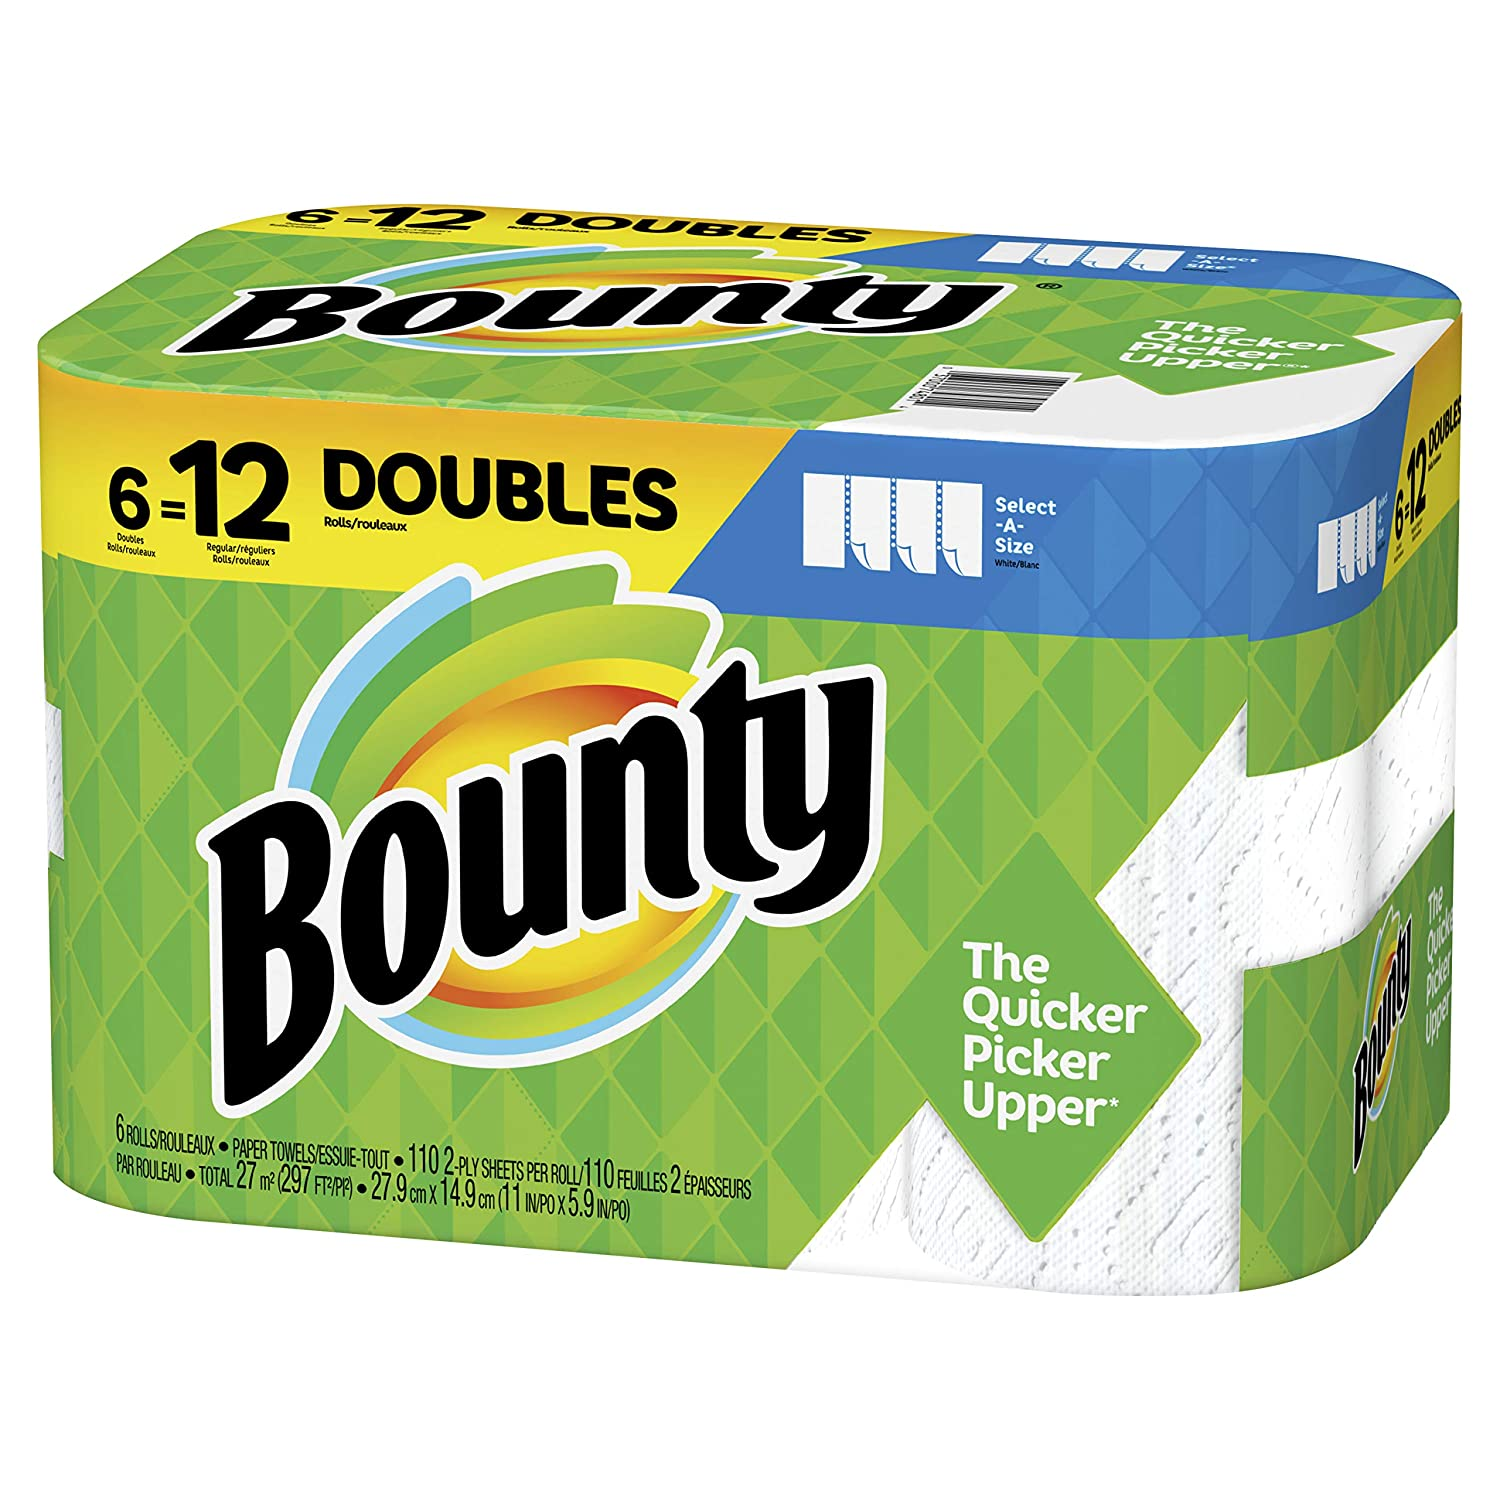 Bounty Select-A-Size eco friendly paper towels